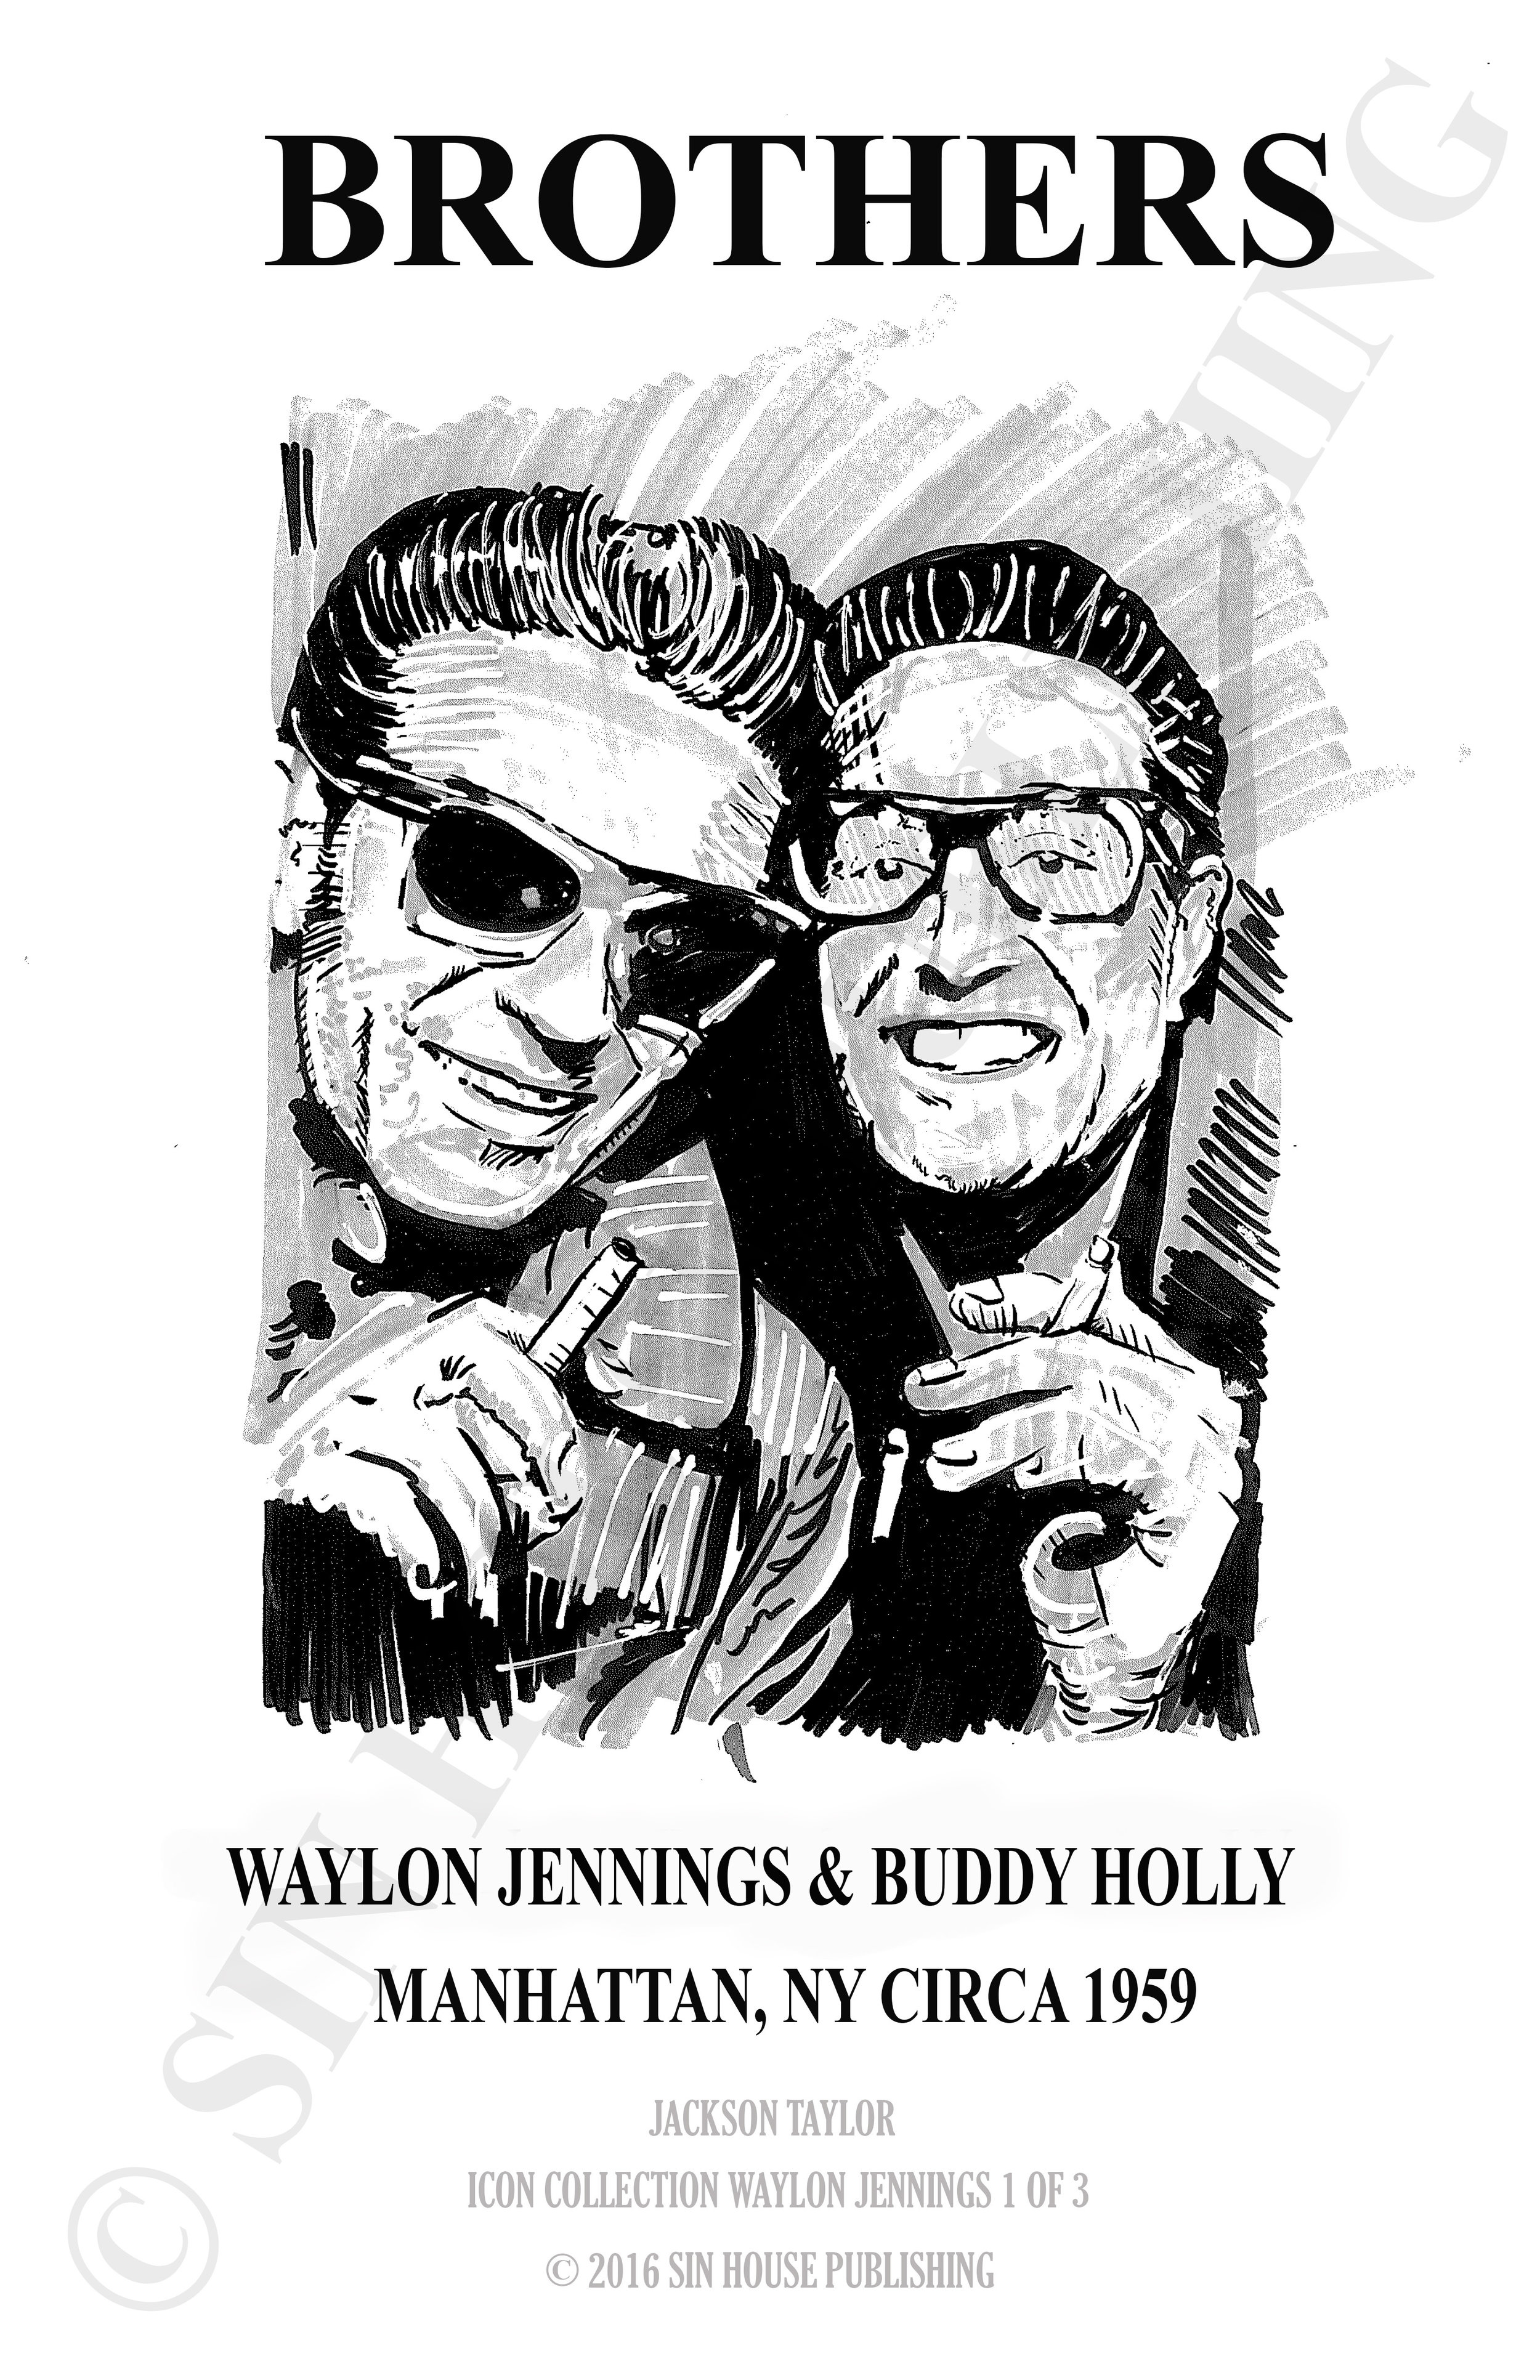 Waylon & Buddy WM.jpg